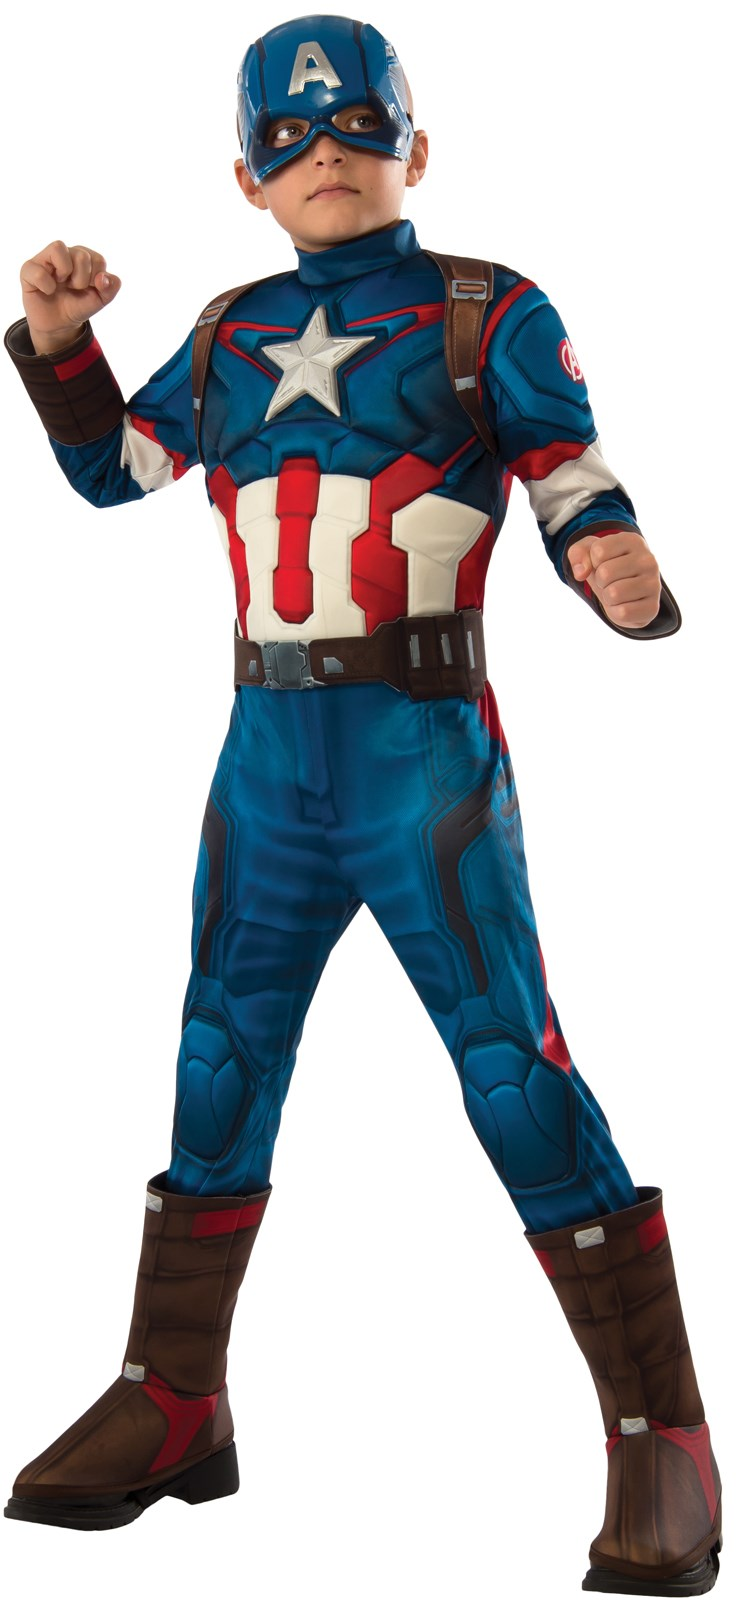 Captain America (Civil War) costume is brand new, size This costume came from a merchandise return pallet. All pieces are there & new, mask is sealed.